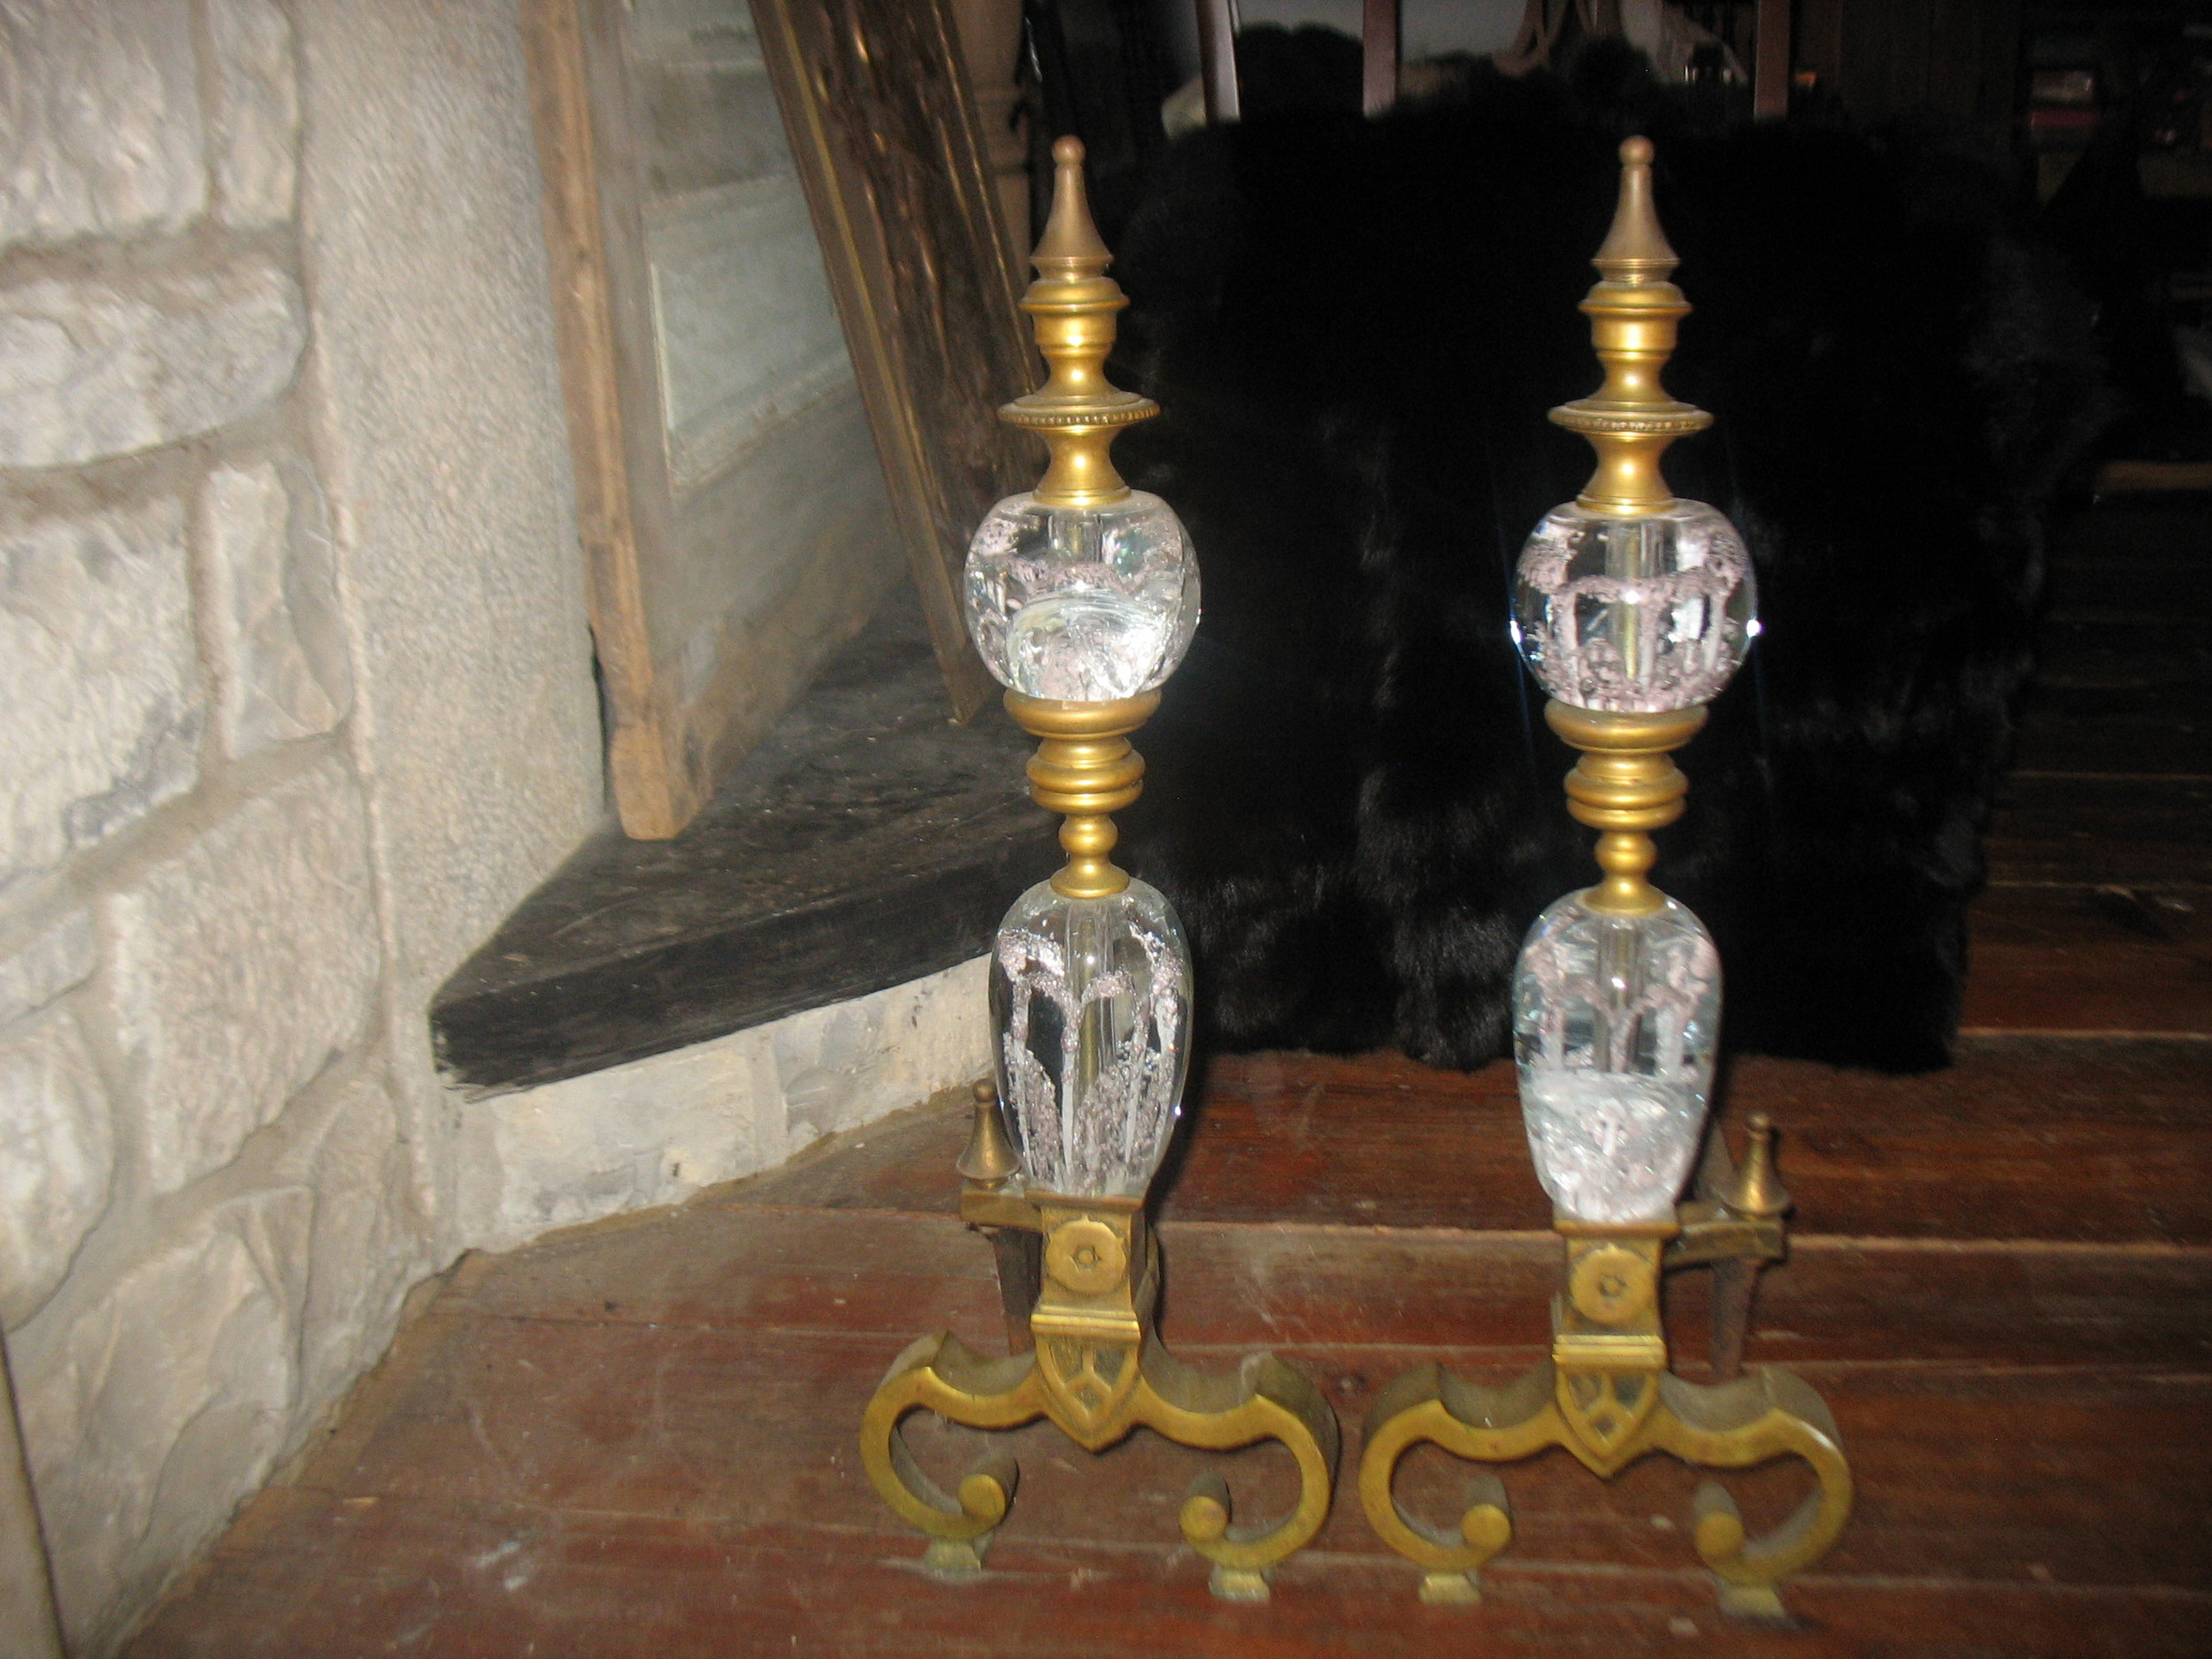 Beautiful pair French Brass/Glass Chenets. This is a very elegant pair for a small fireplace in a ladies boudoir. The glass is blown with pink flowers blown inside the glass. The base is a curved gracefully fashioned brass with brass separating each piece of glass and finished with brass finials on top. There are two cracked places unfortunately in one of the bottom glass pieces and one of the top, but still a work of art. Therefore I am asking only a fraction of what they are worth. These would be exclusively for a decorative effect in the fireplace.